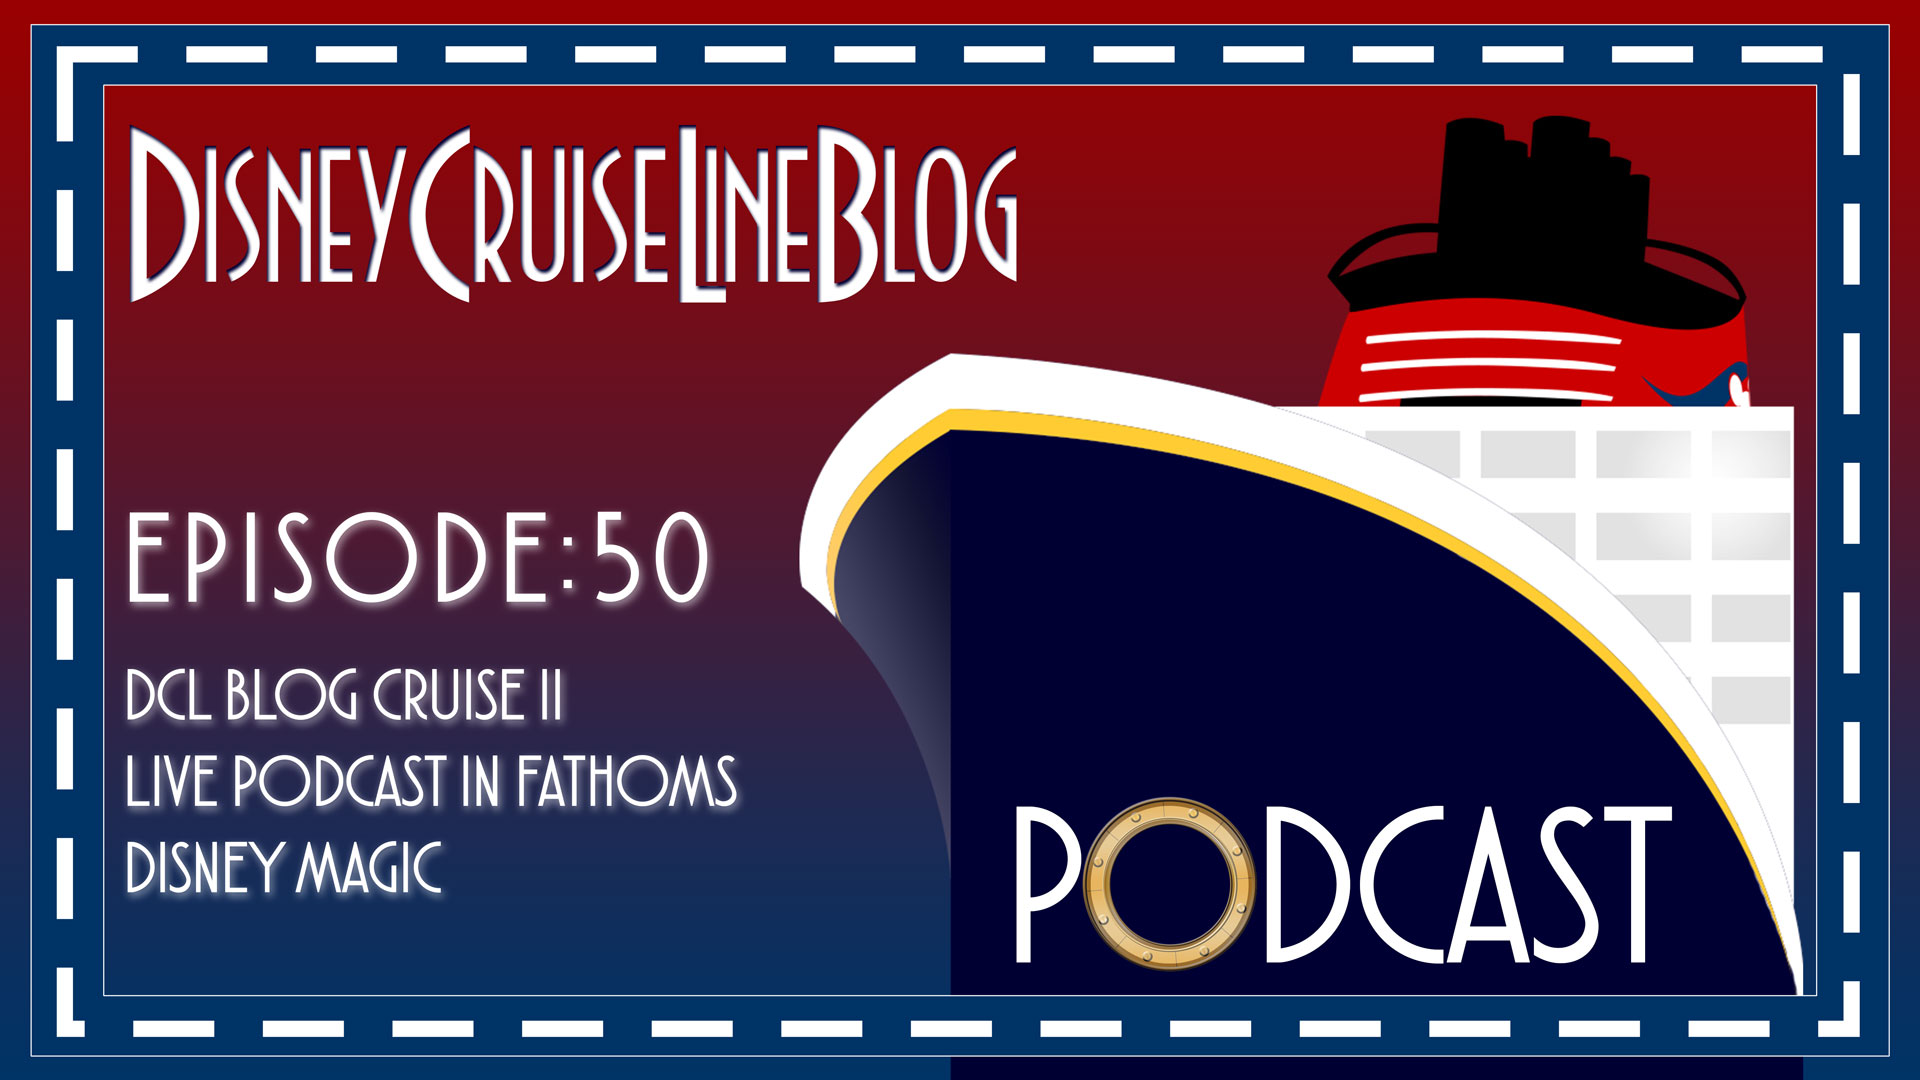 DCL Blog Podcast Episode 50 Podcast DCL Blog Cruise 2